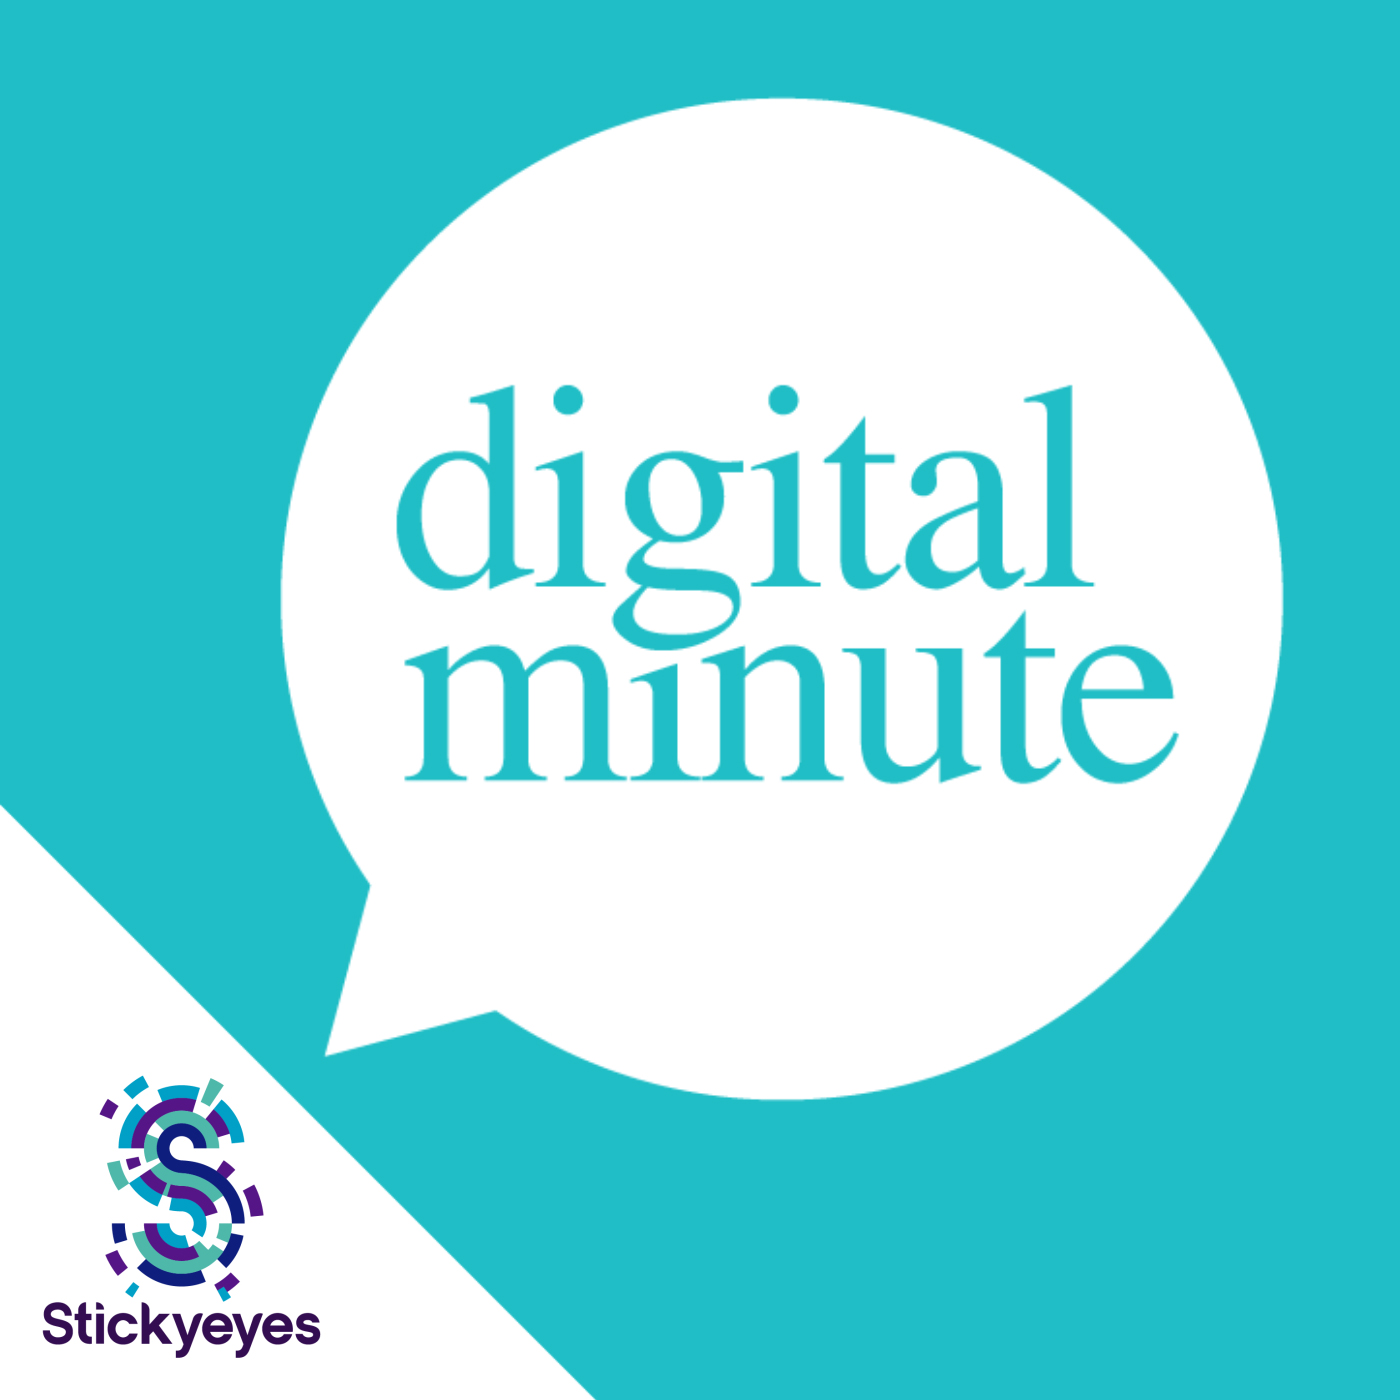 Stickyeyes_digitalminute_podcast_2016.jpg